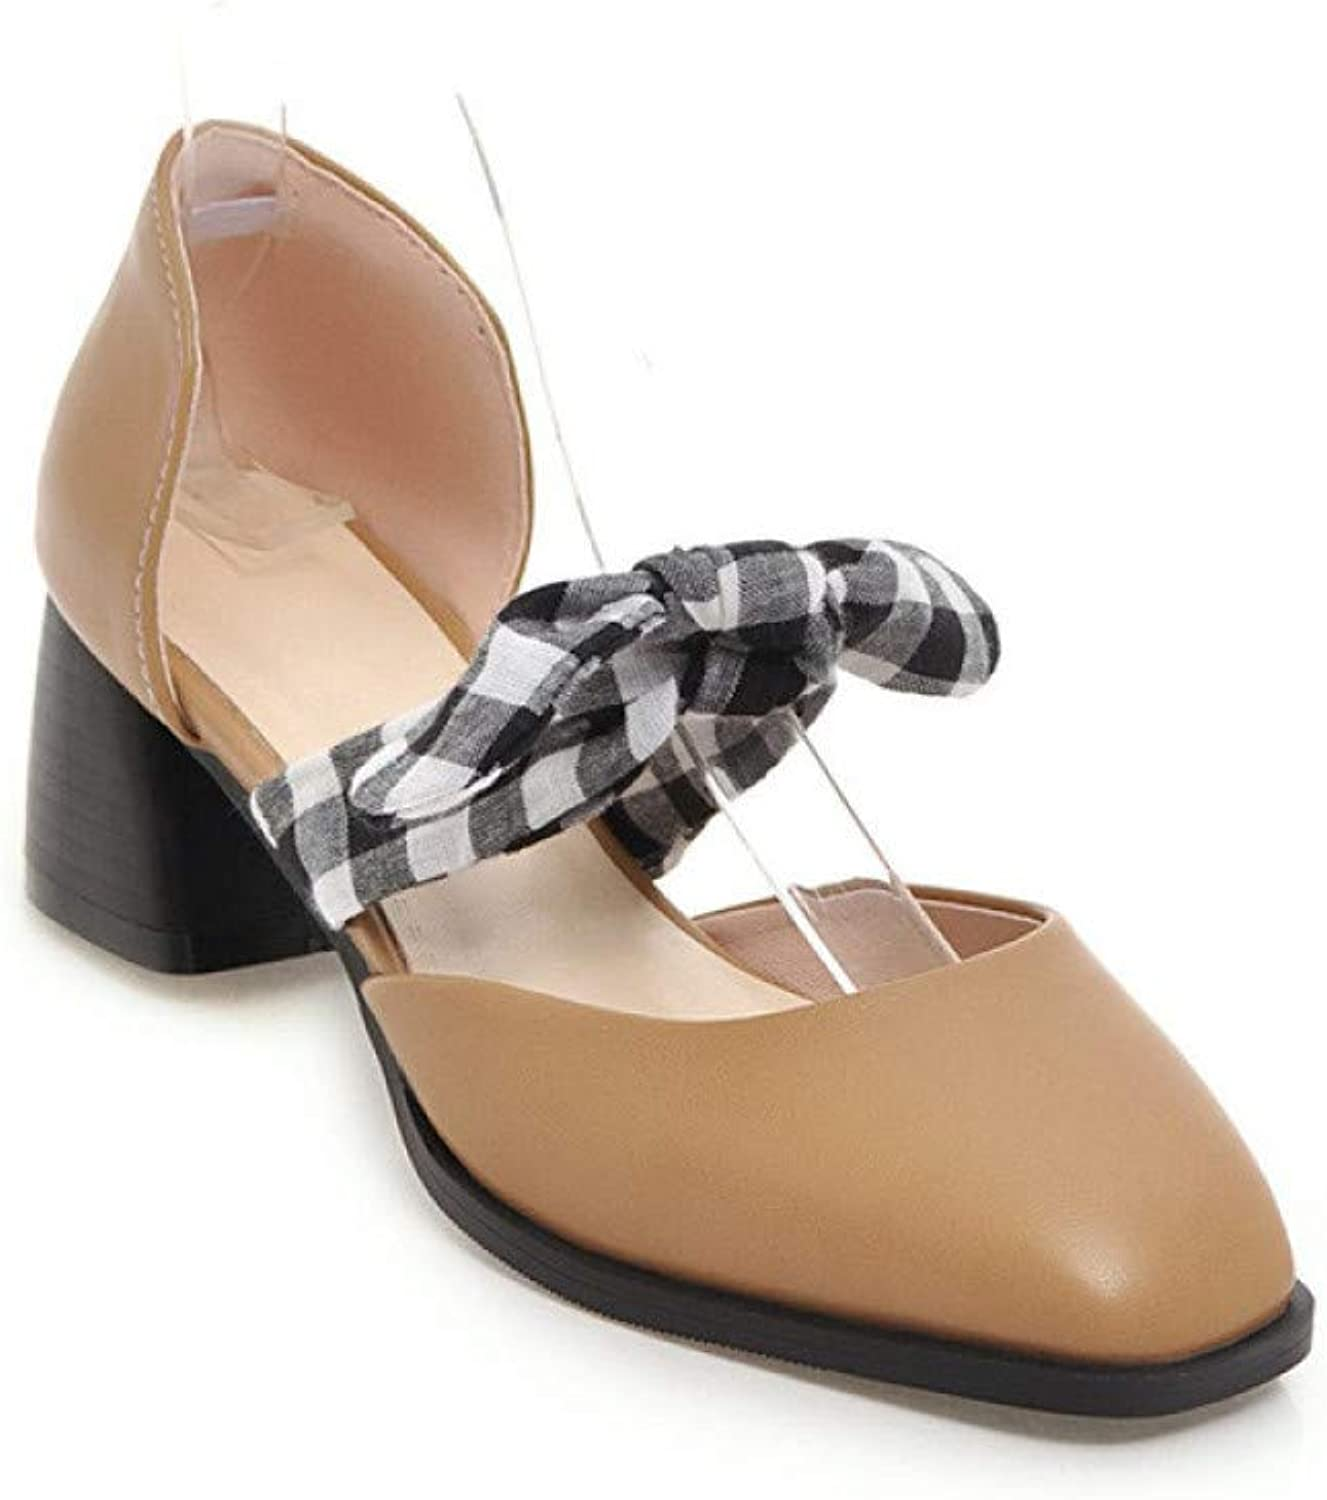 Women Closed Toe Sandals Fashion Ladies High Heels Pu Bow Plaid Work shoes,Apricot,41